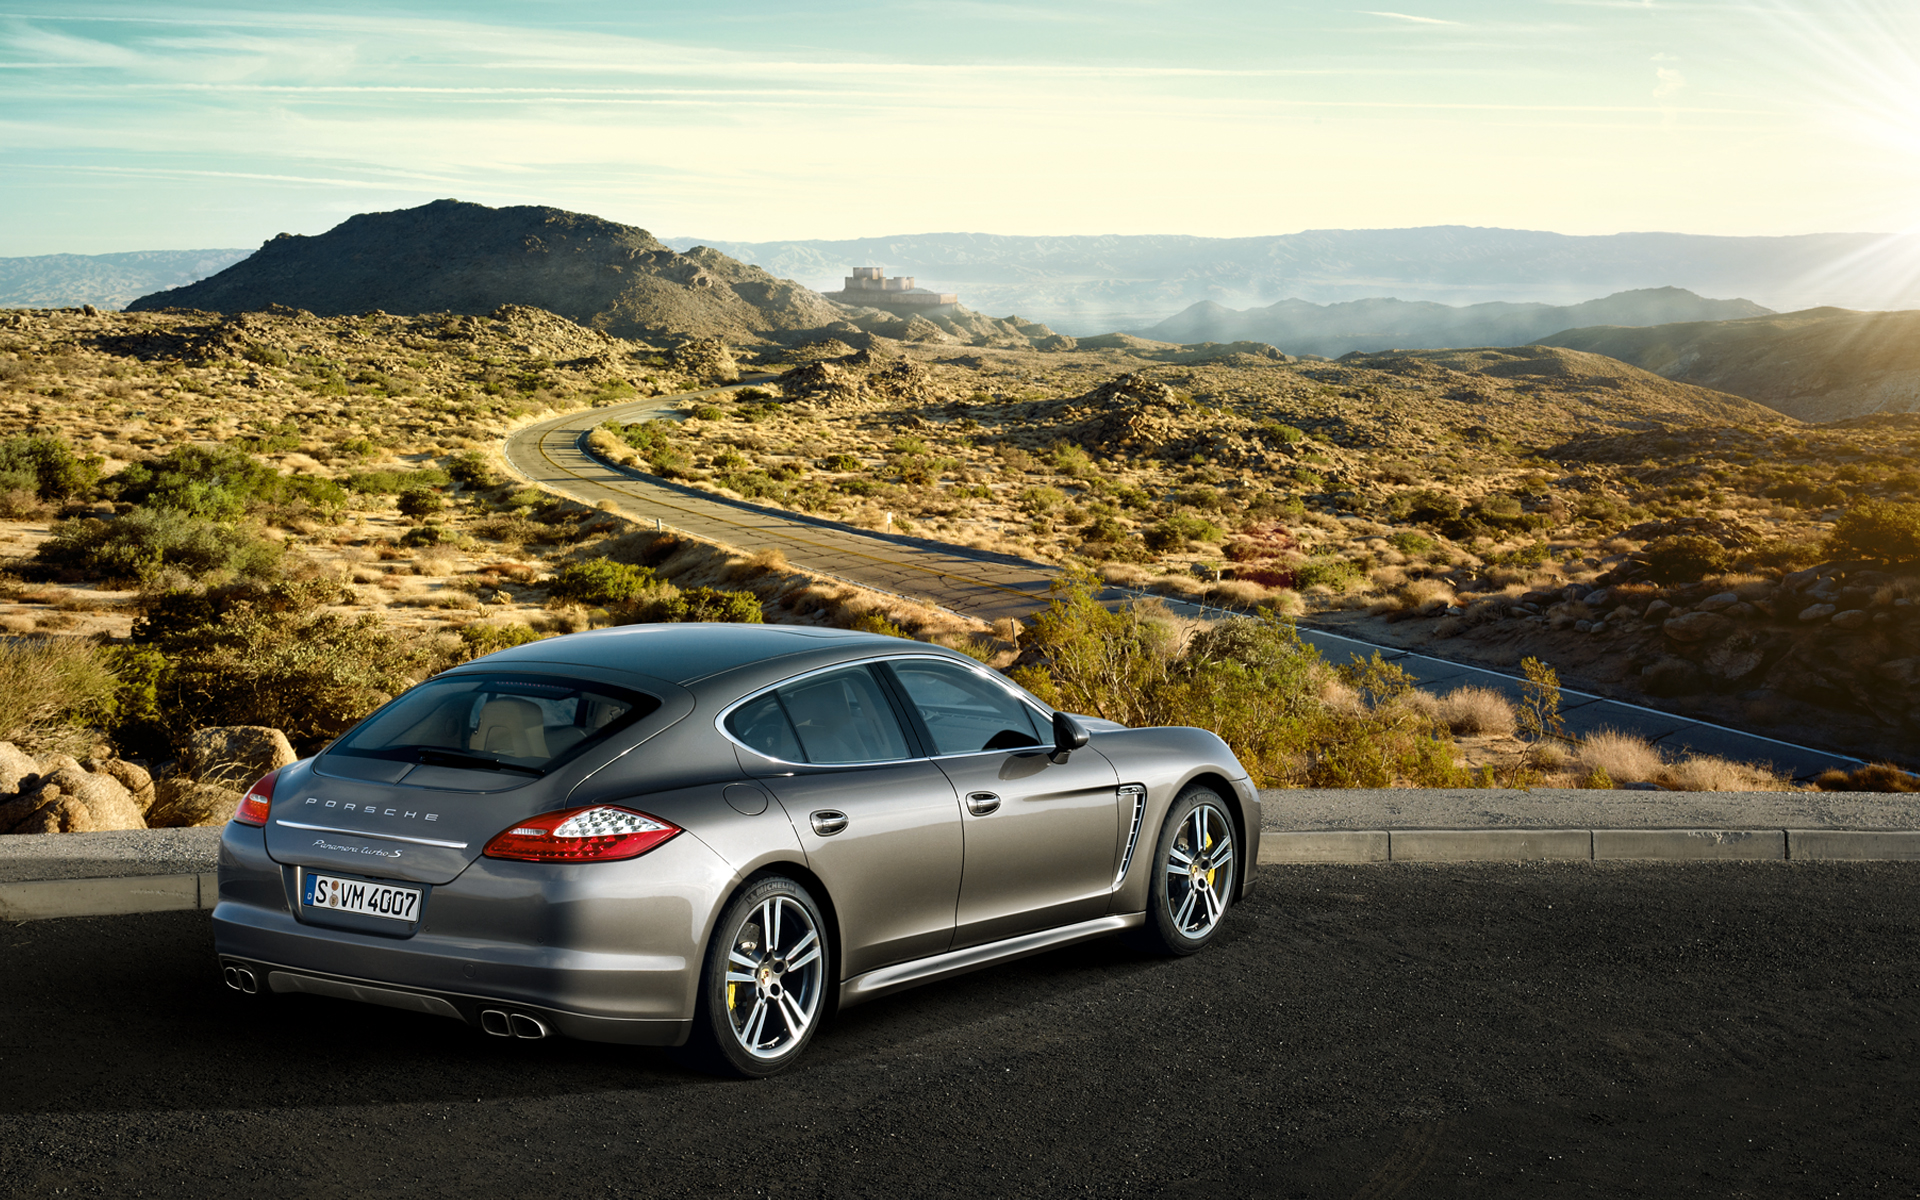 Porsche Panamera Lease >> 2011 Panamera Turbo S wallpapers